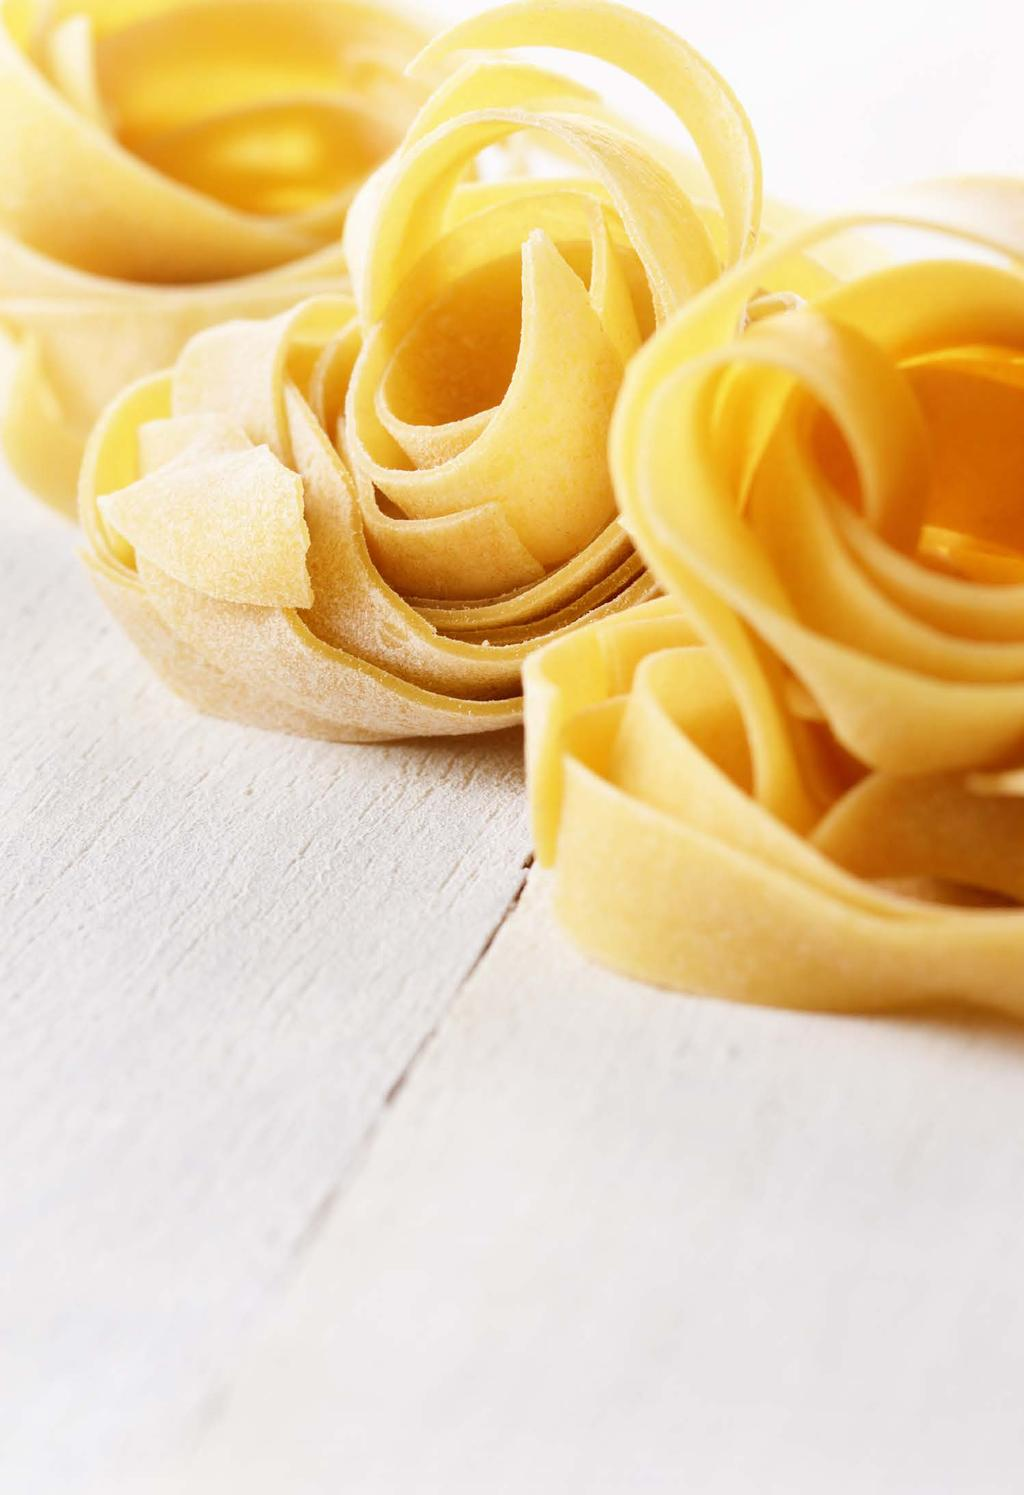 COOKING TIP As a general rule, you should cook 80g of pasta